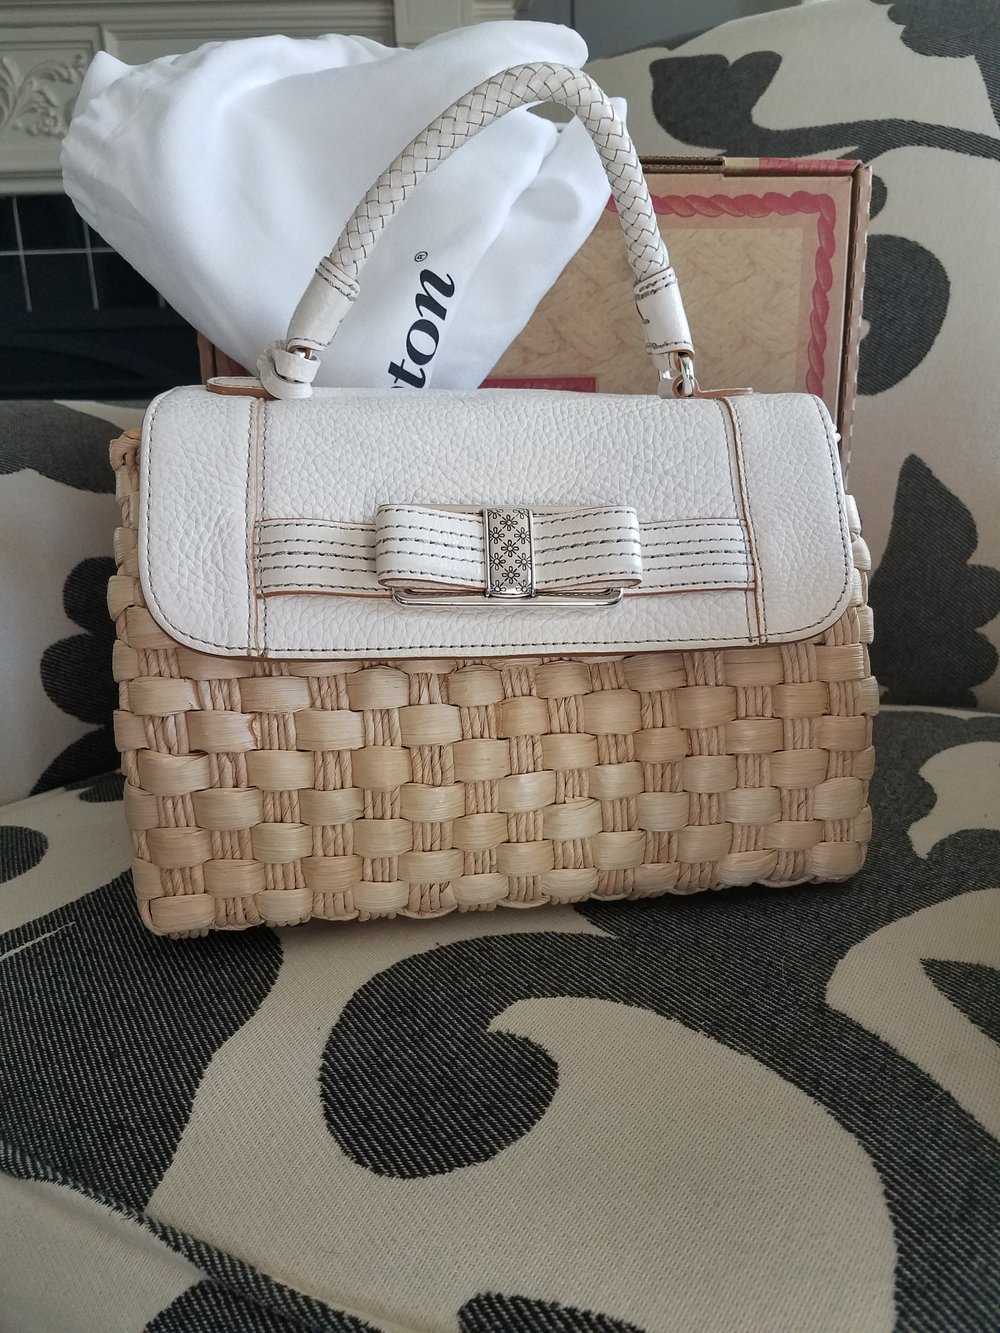 Straw Bag - Classic styling, neutral leather trim, and silver hardware make this a great versatile straw handbag.